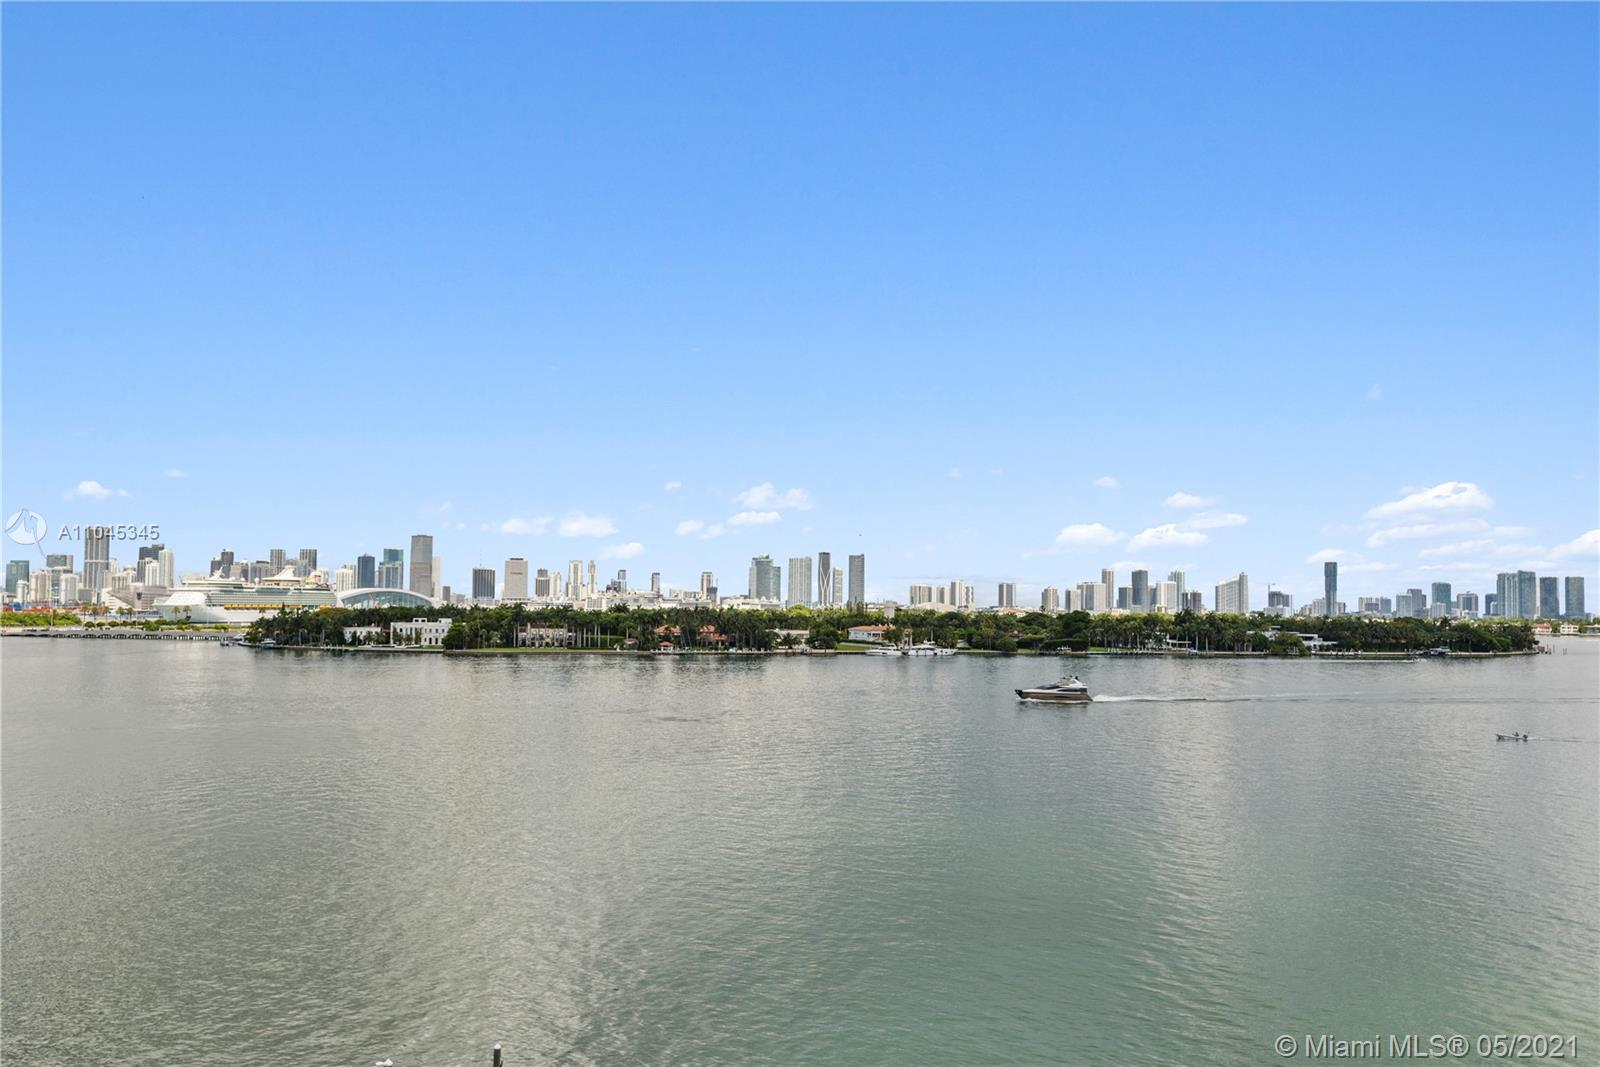 Experience unsurpassed views of Biscayne Bay, Star Island & Downtown Miami. This 1 bed 1 bath (776 SF) unit features floor to ceilings windows, chef kitchen, designer bathroom & private terrace. This full service luxury building offers 24hr security, valet, concierge, fitness center & heated pool & spa. World class dining, entertainment & brilliant beaches are minutes away.